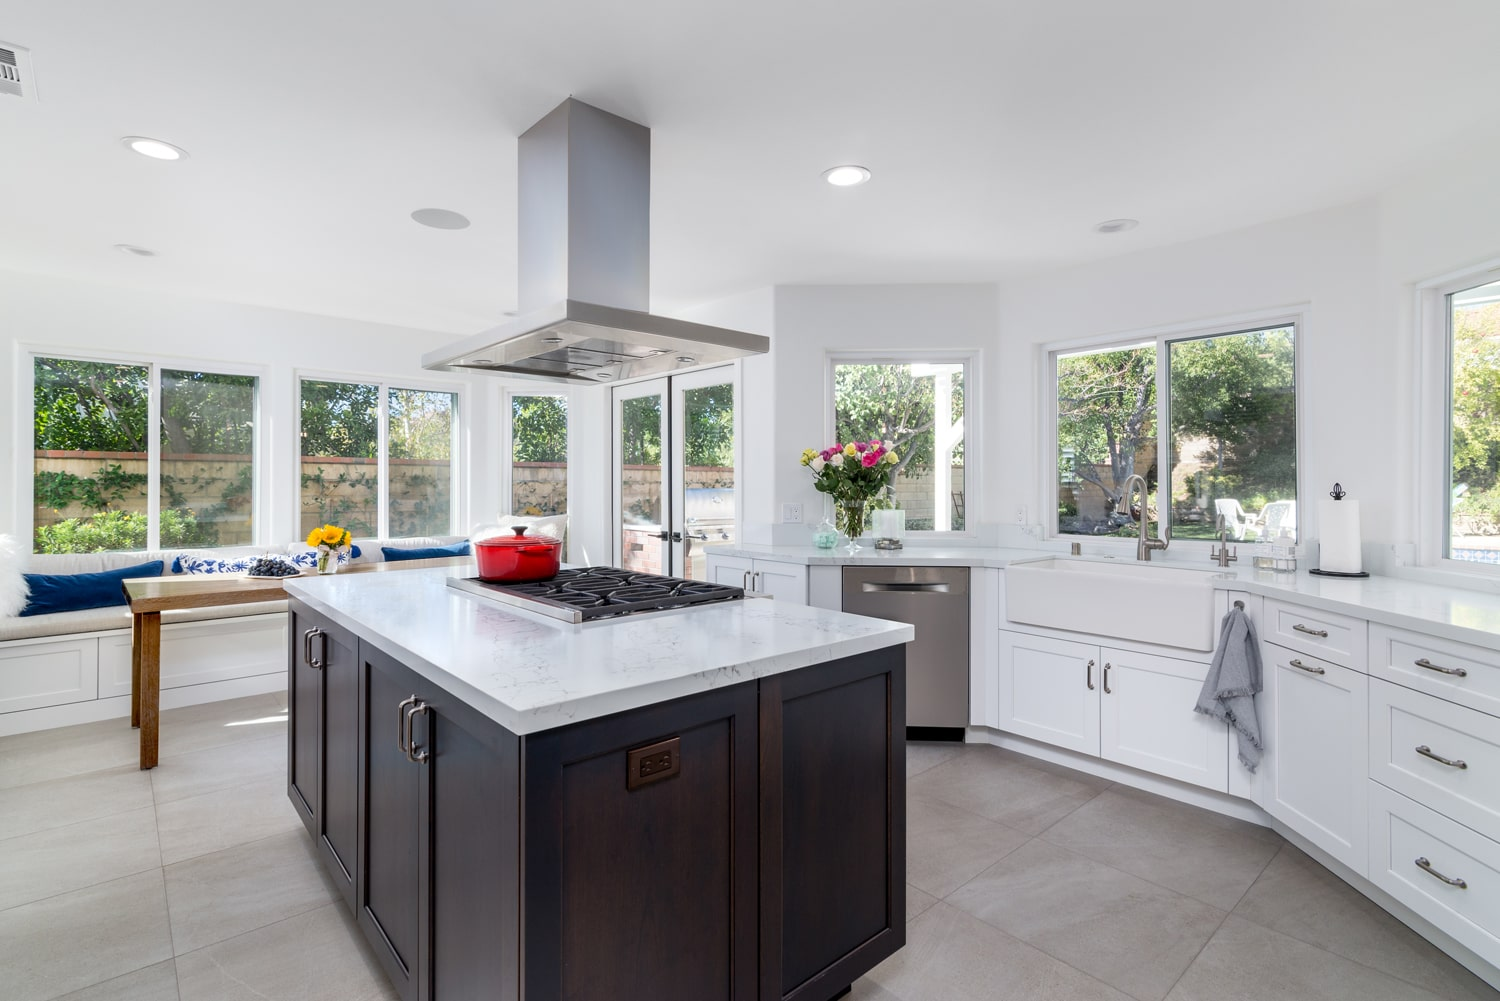 Oak Park Kitchen Remodel Incorporates Trending Design Features